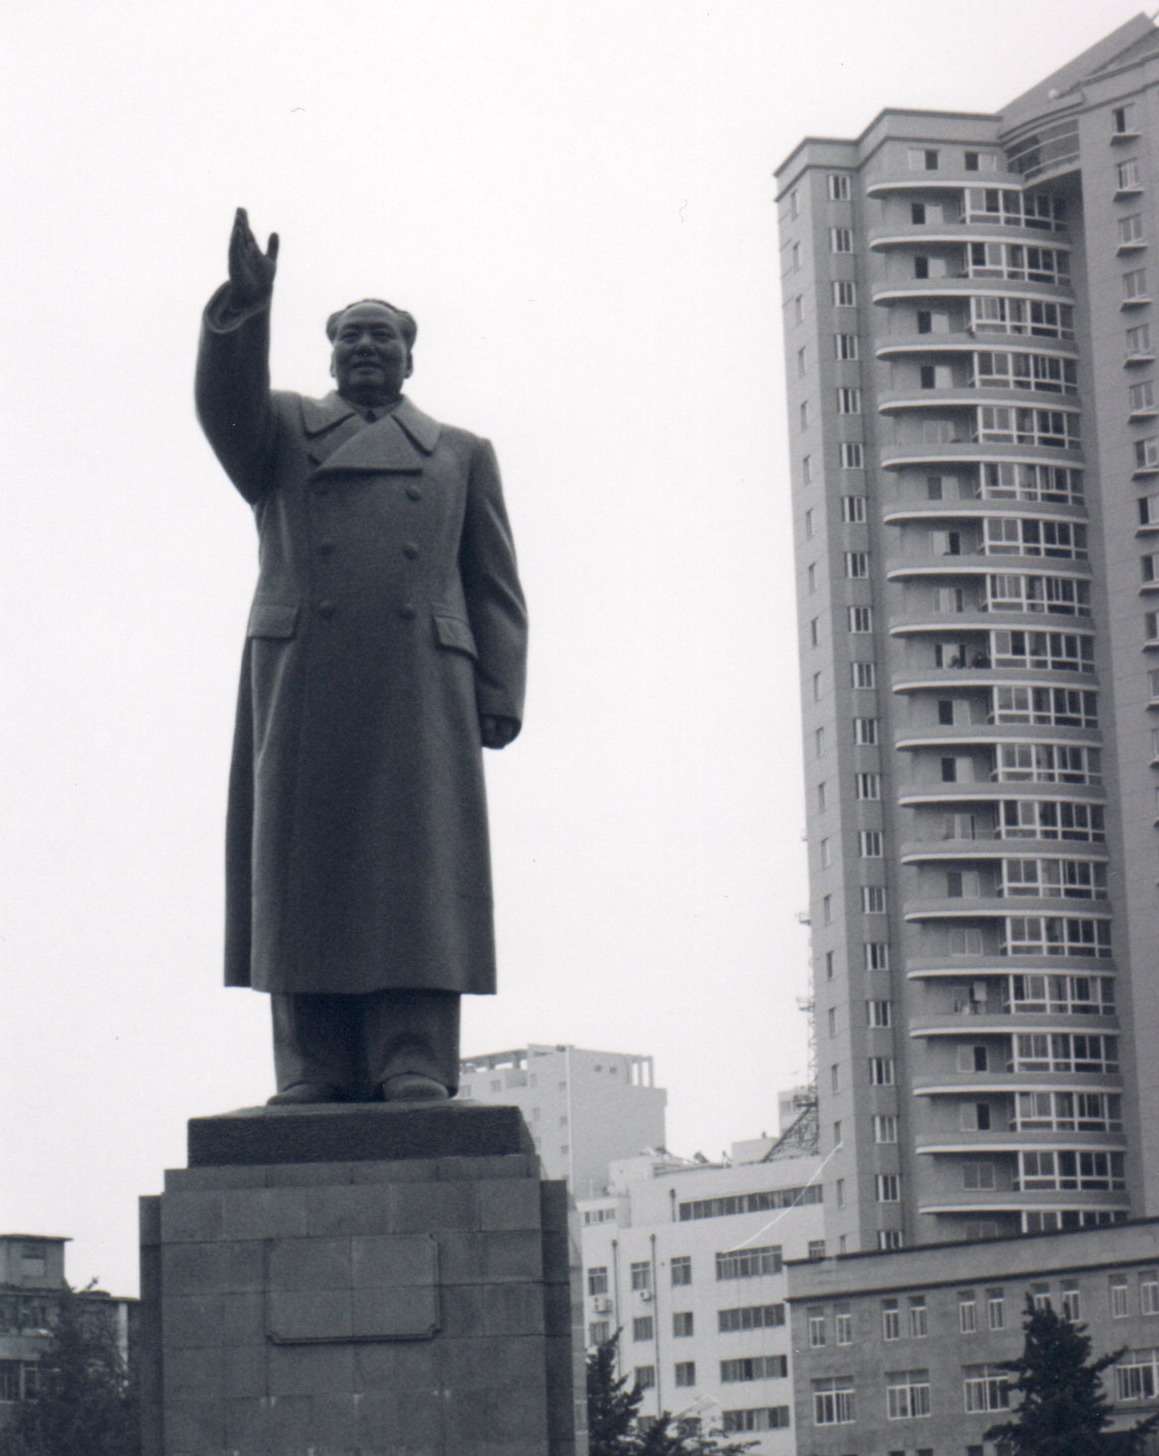 mao zedong essay analysis of the classes of chinese society Immediately download the mao zedong summary, chapter-by-chapter analysis, book notes, essays, quotes, character descriptions, lesson plans, and more - everything you.